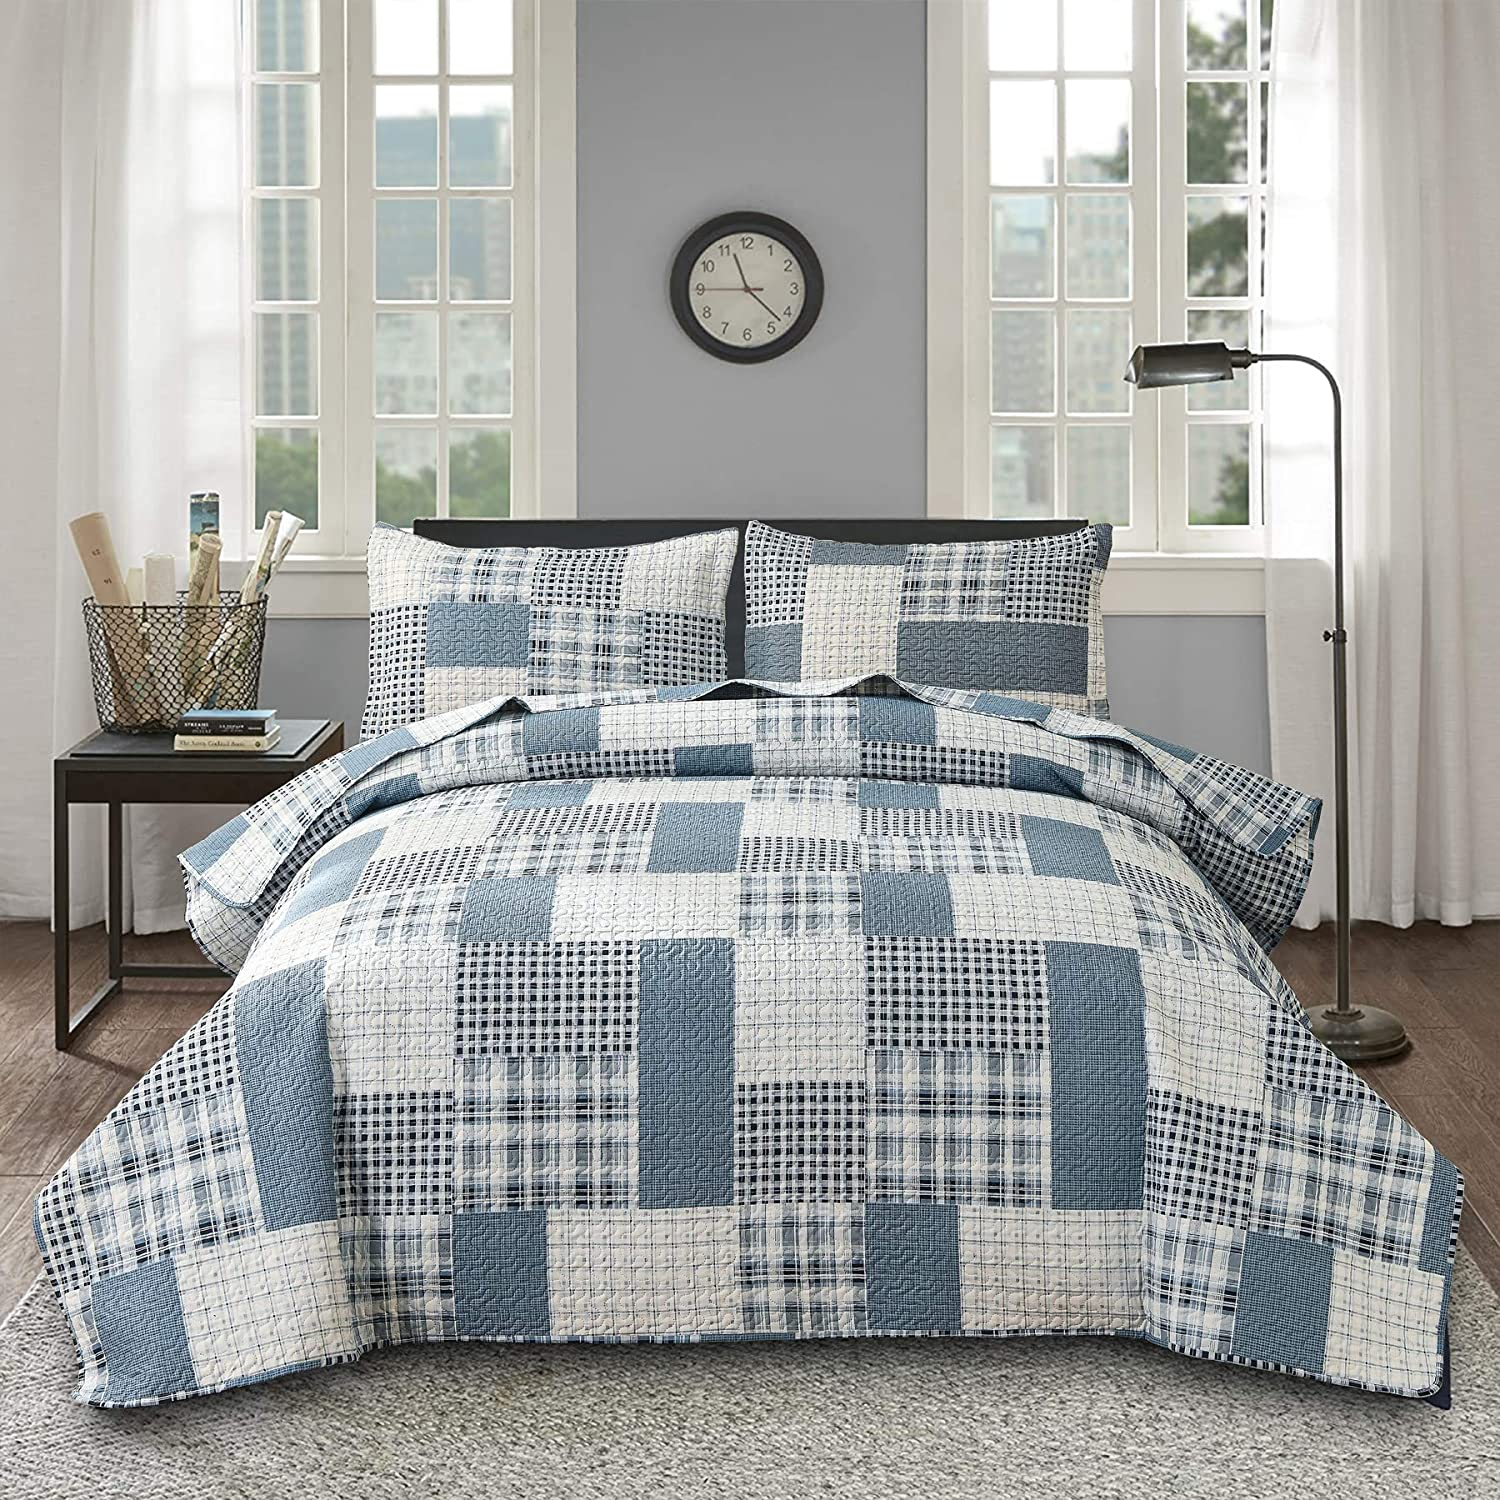 Ycosy Plaid Quilts security Blue White Grey Tartan New Shipping Free Shipping for Stripes Coverlets